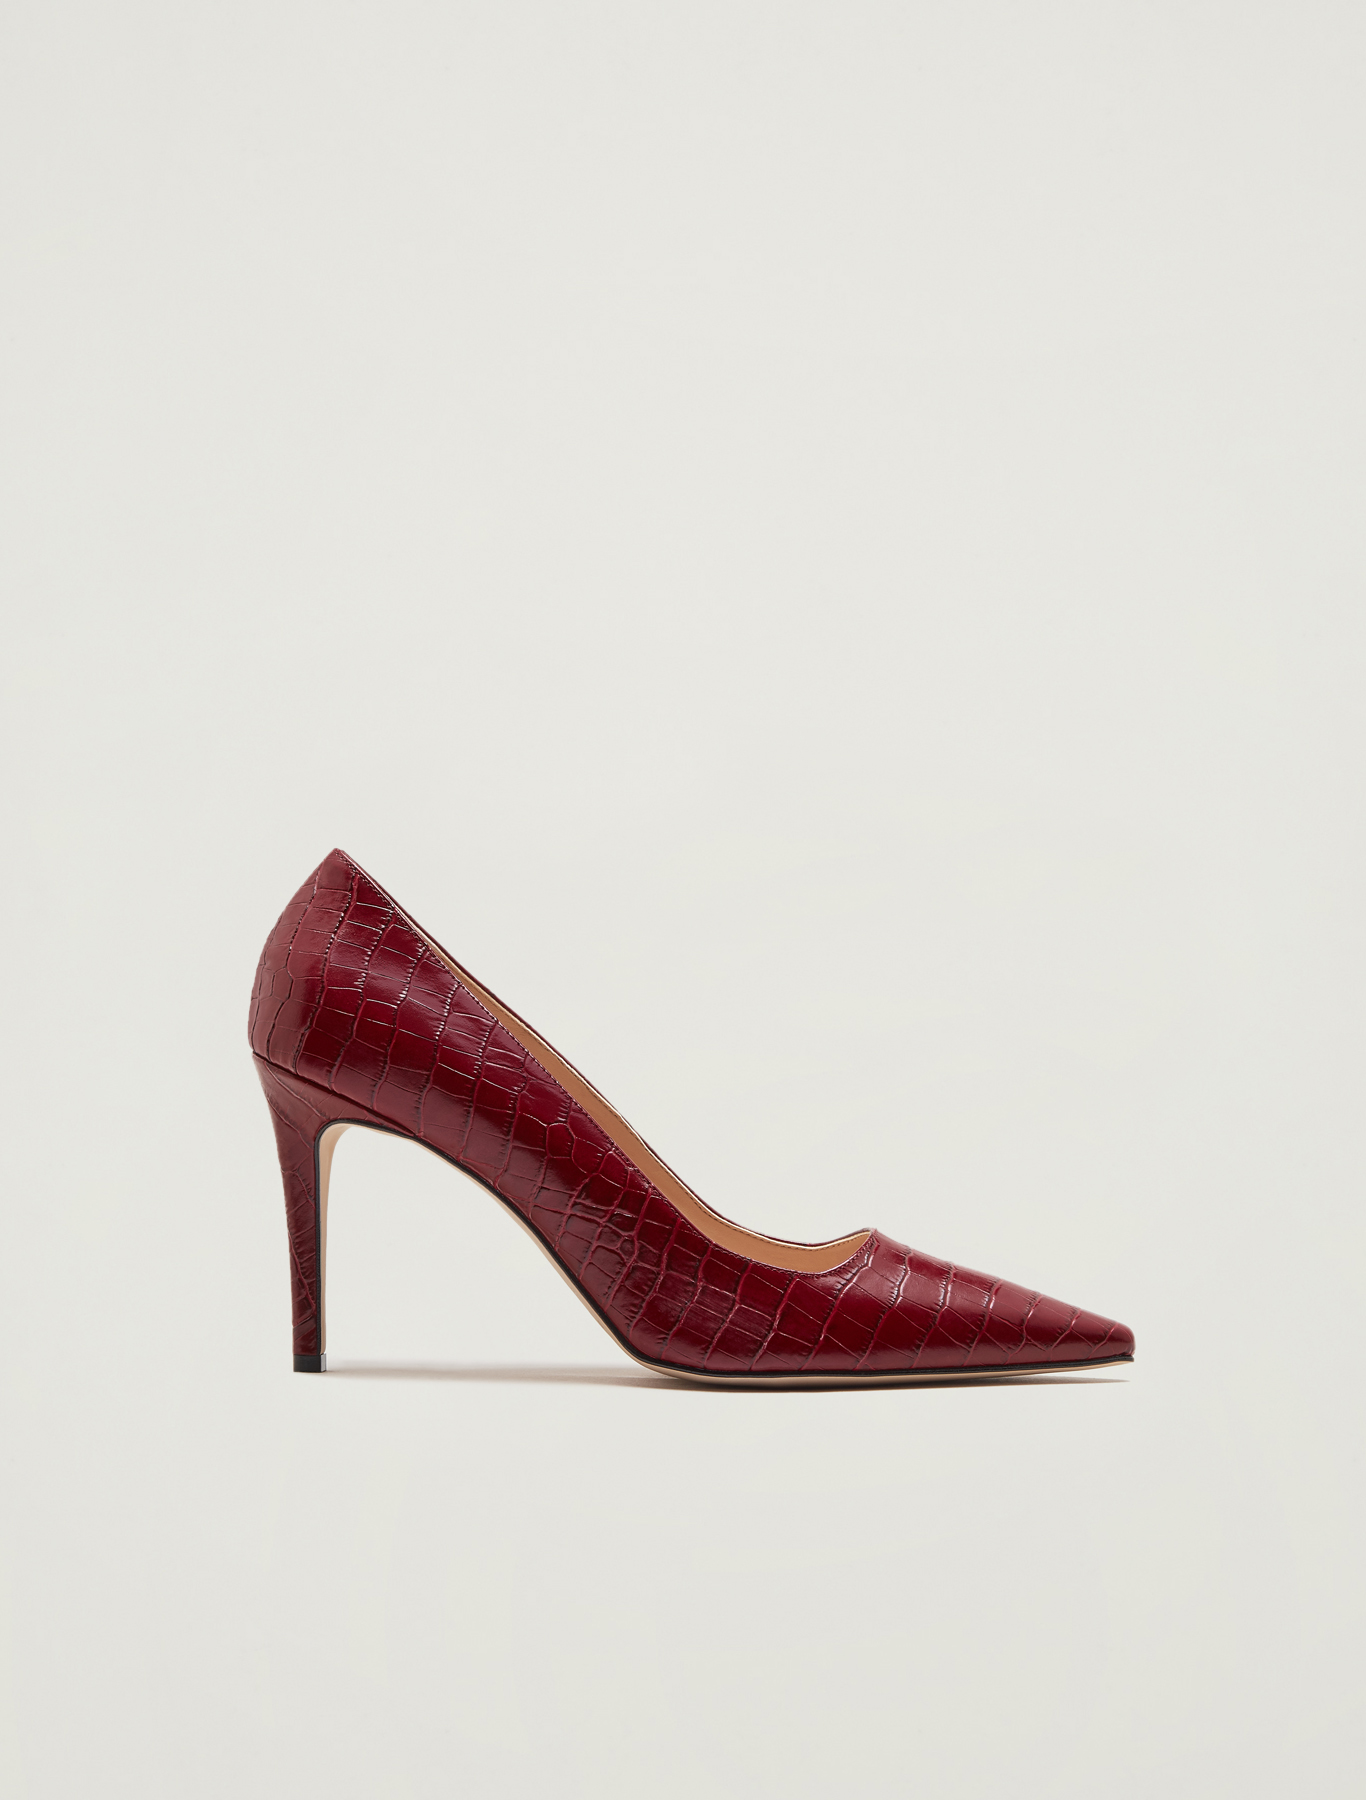 Crocodile-print leather court shoes - red - pennyblack